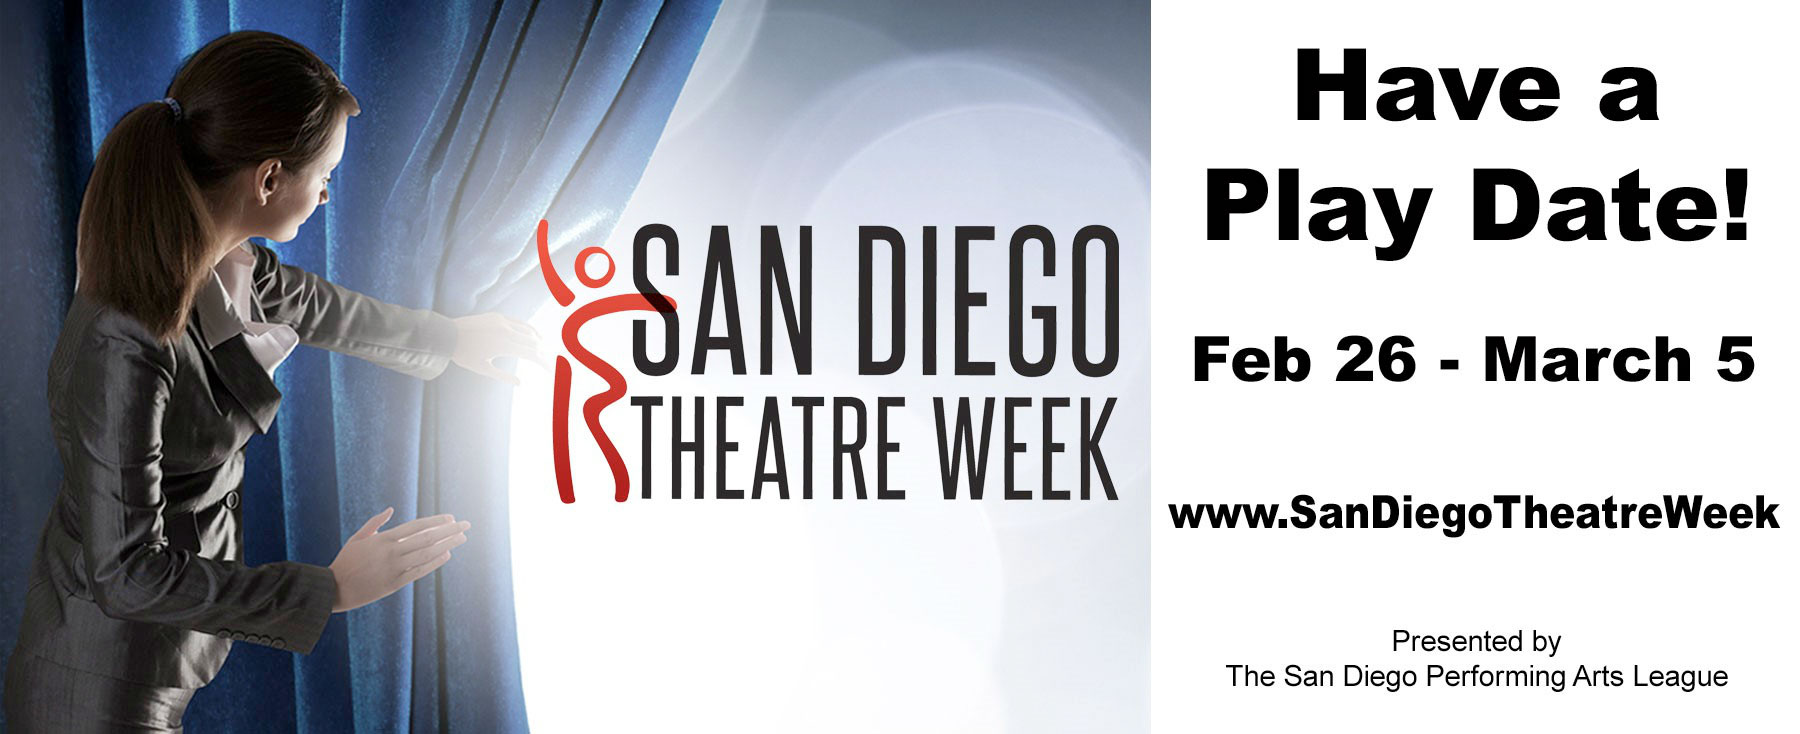 San Diego Theatre Week - Top Things to Do